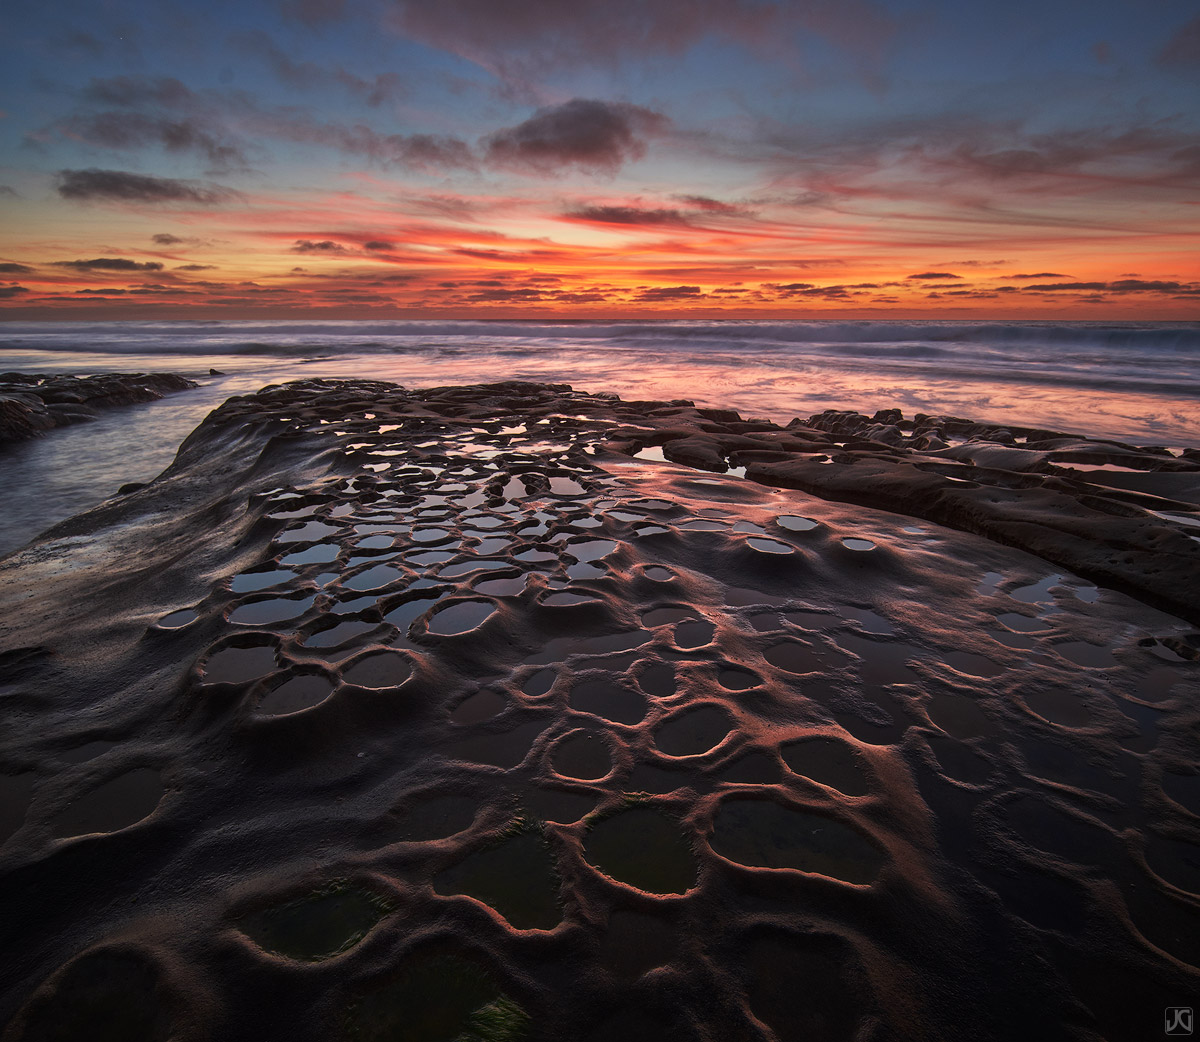 California, coast, La Jolla, sunset, sky, clouds, reflection, potholes, photo